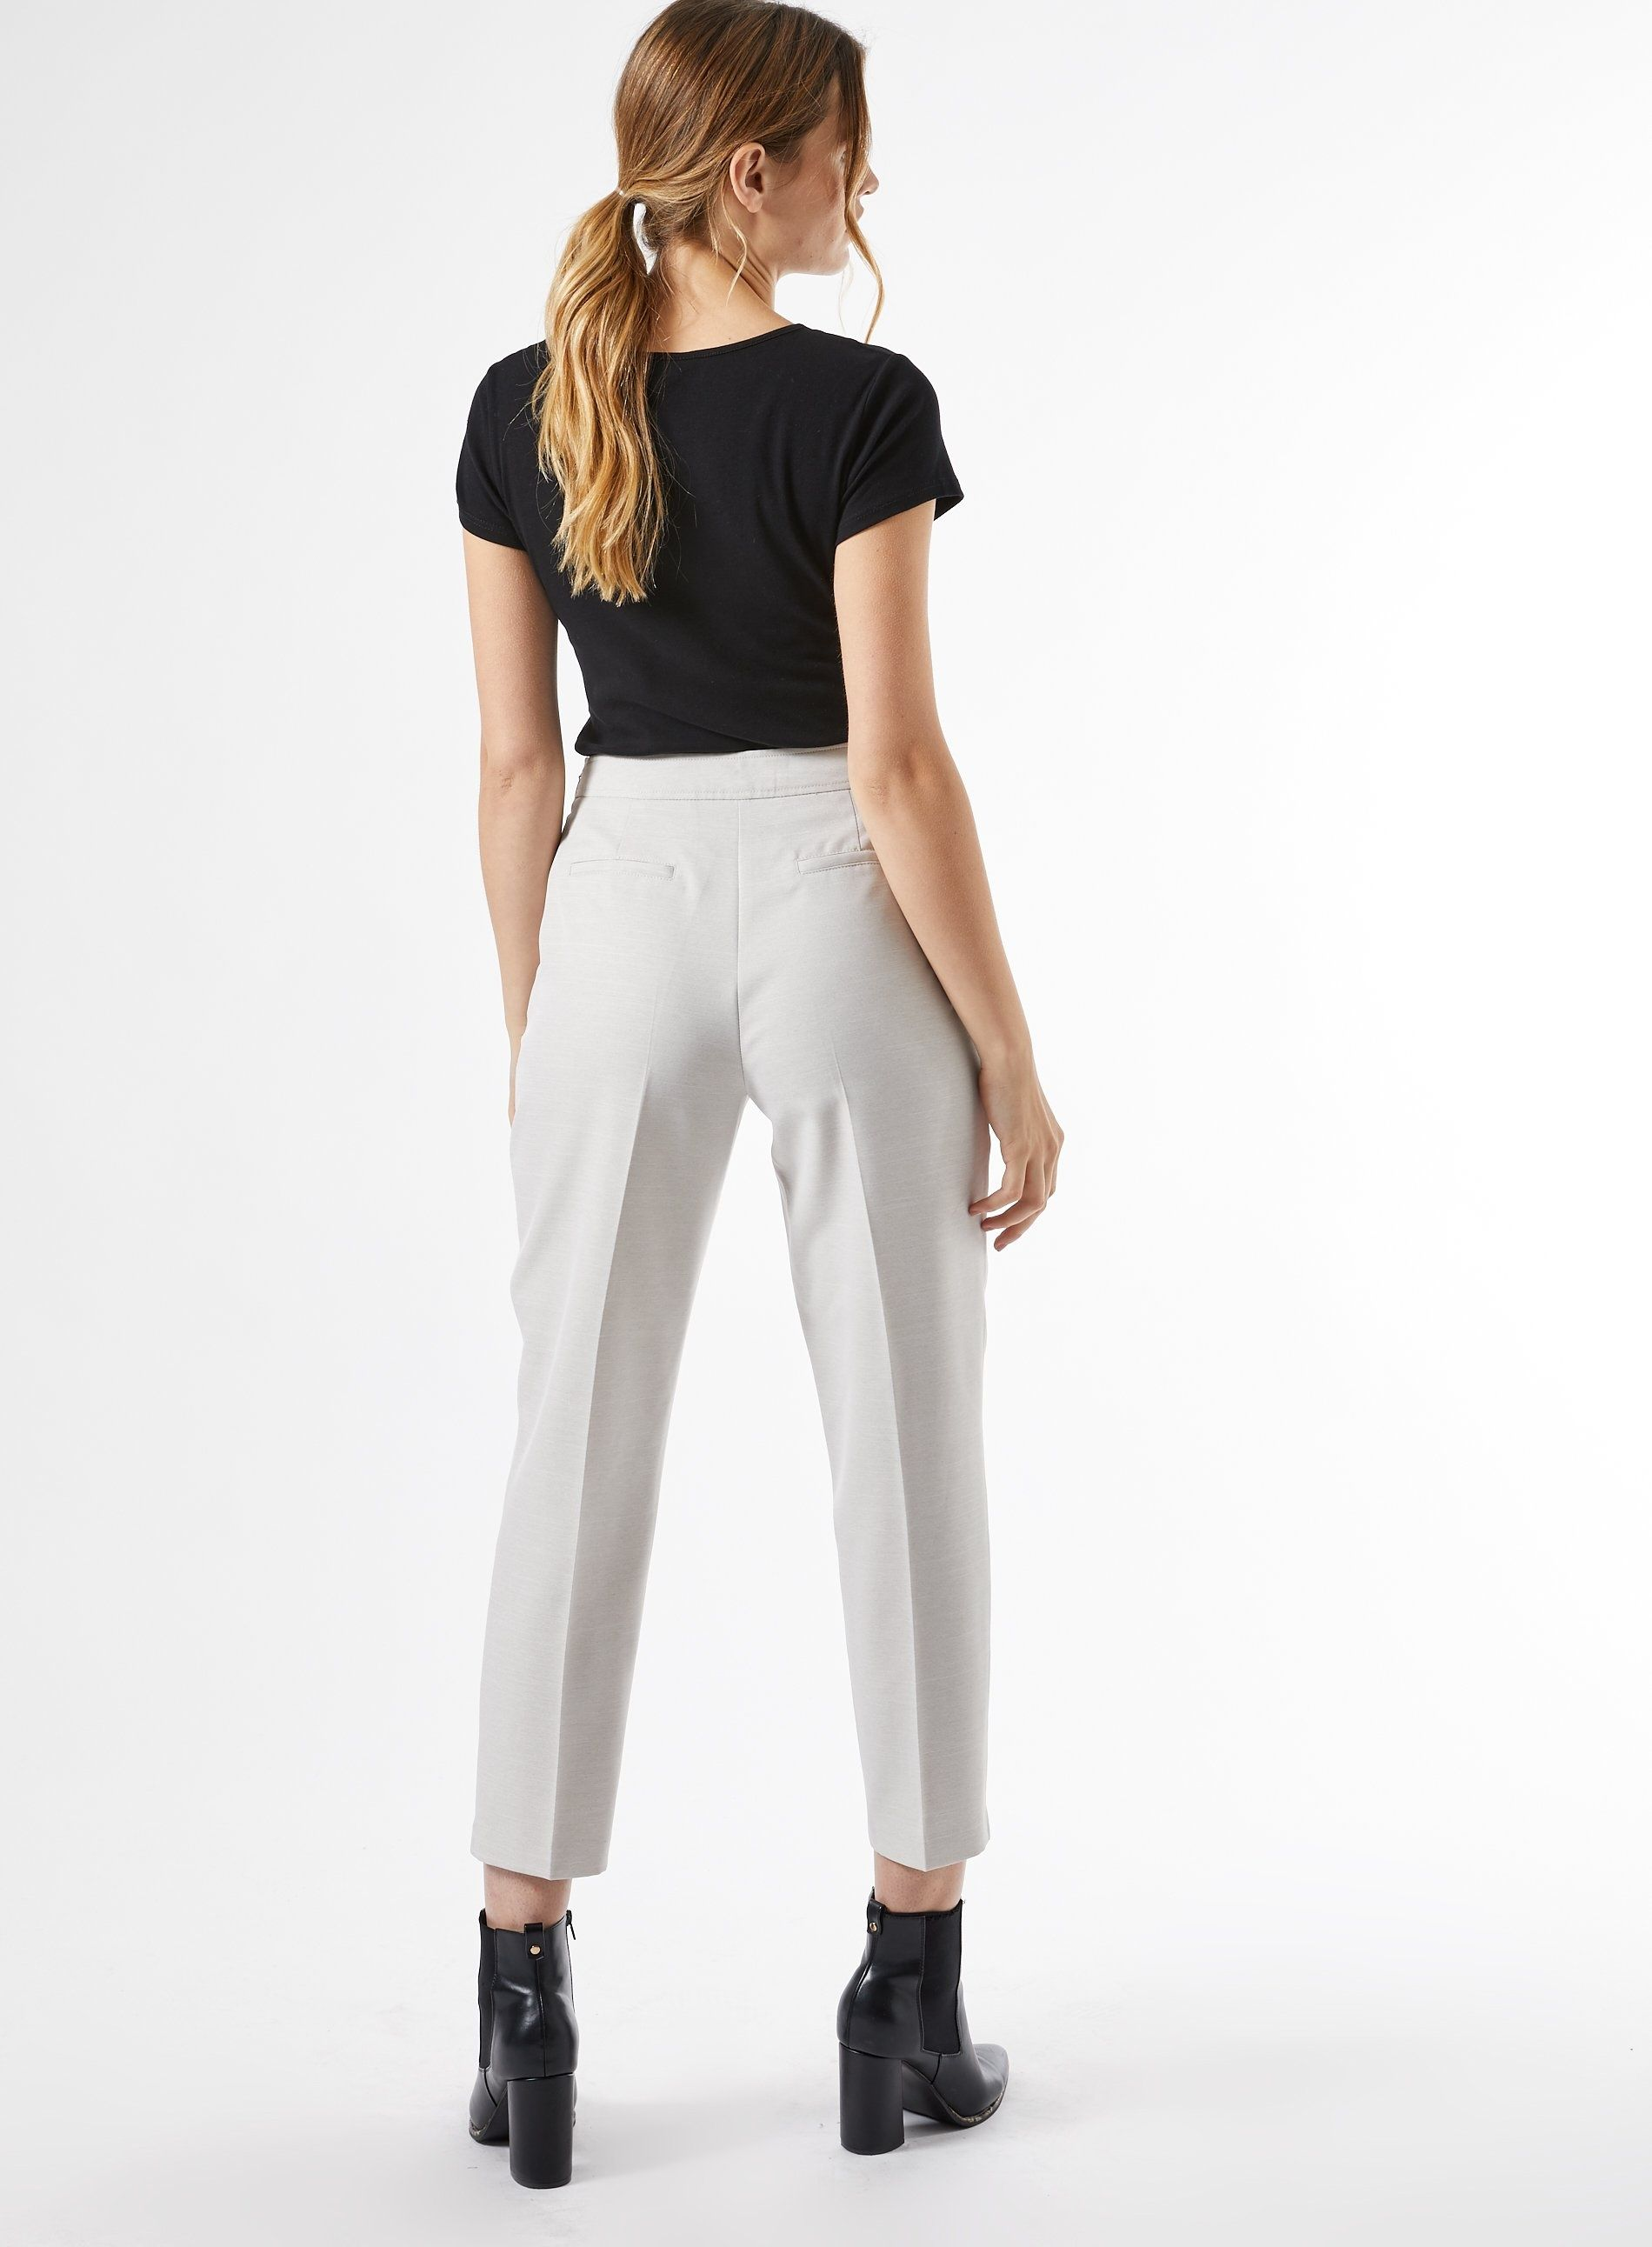 Dorothy Perkins Womens Grey Ankle Grazer Tailored Trousers Pants Bottoms